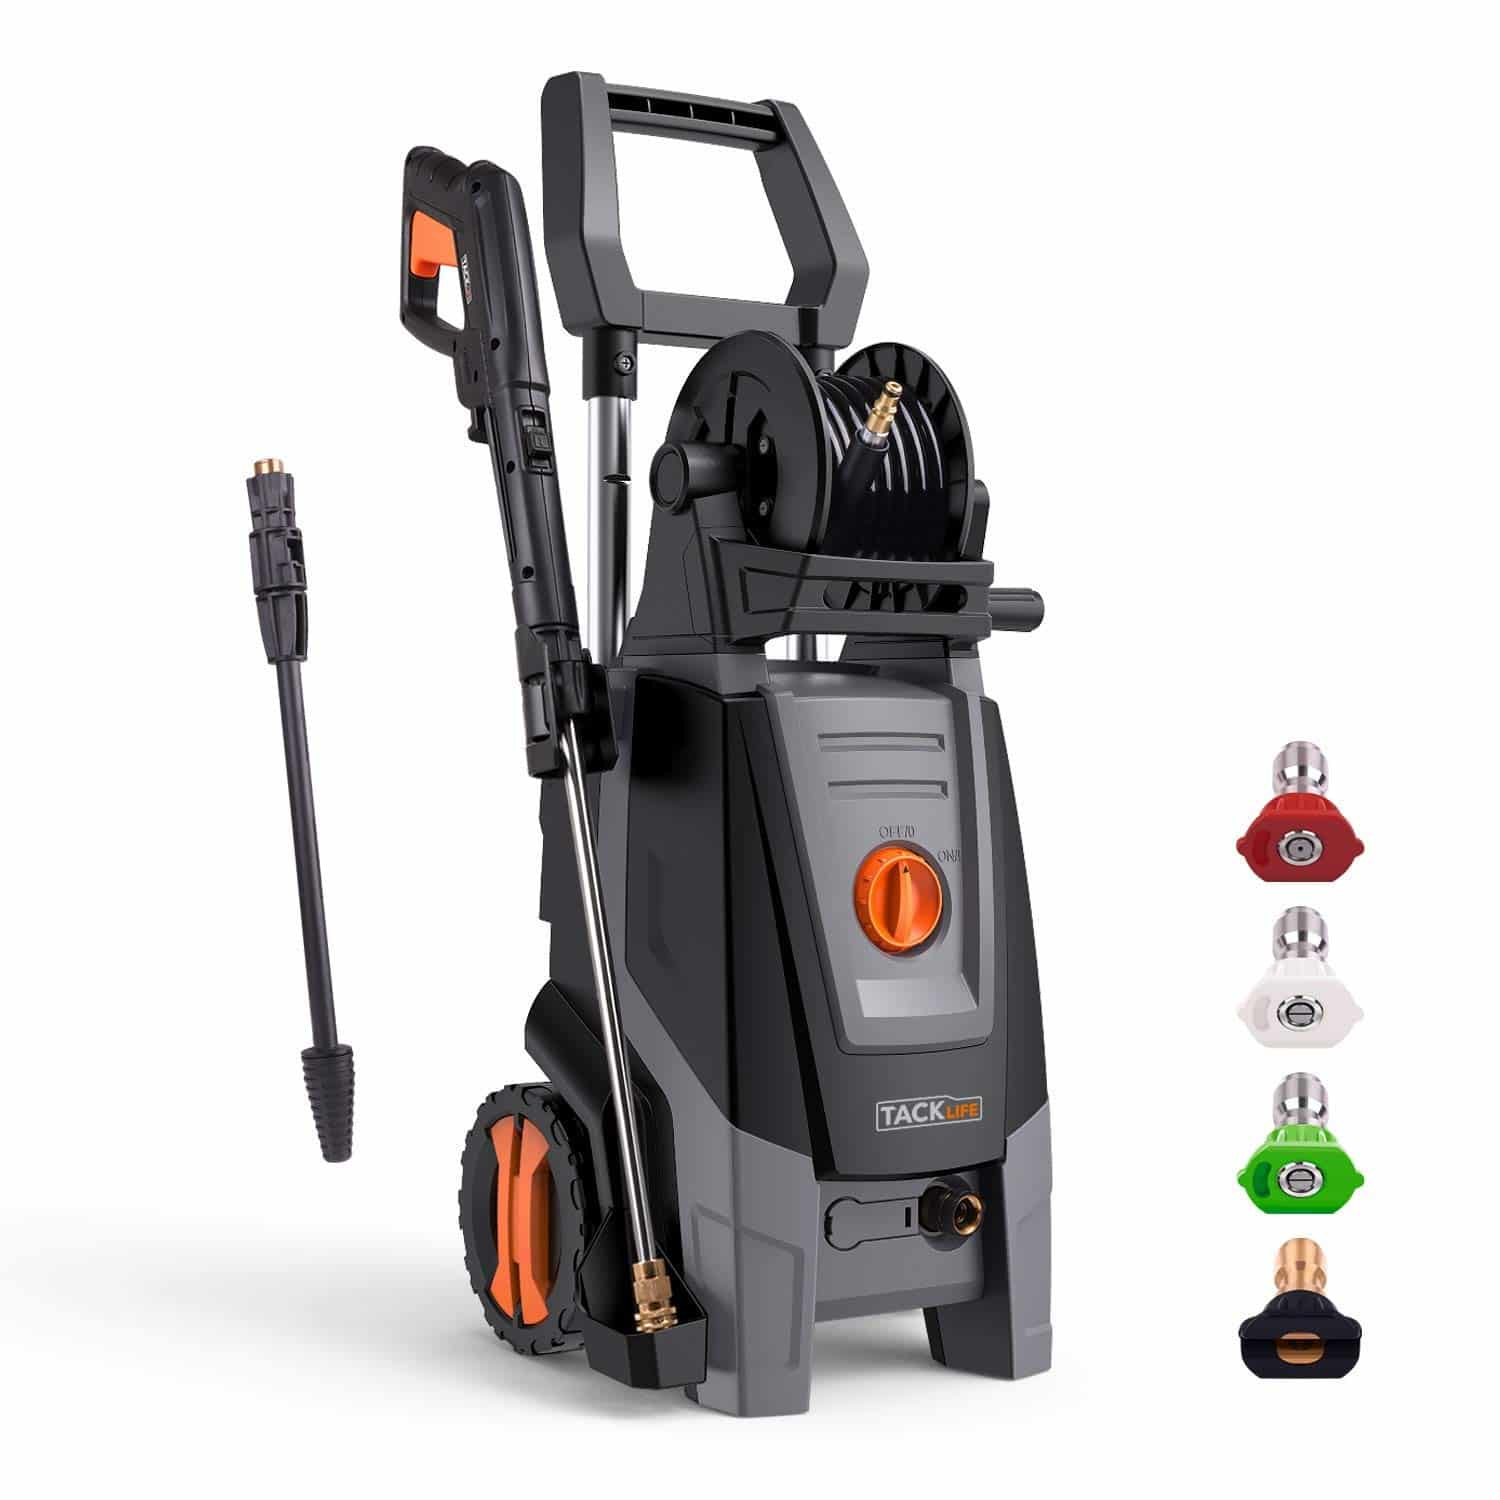 Tacklife Pressure Washer High Efficiency 2300 Psi 1 8 Gpm